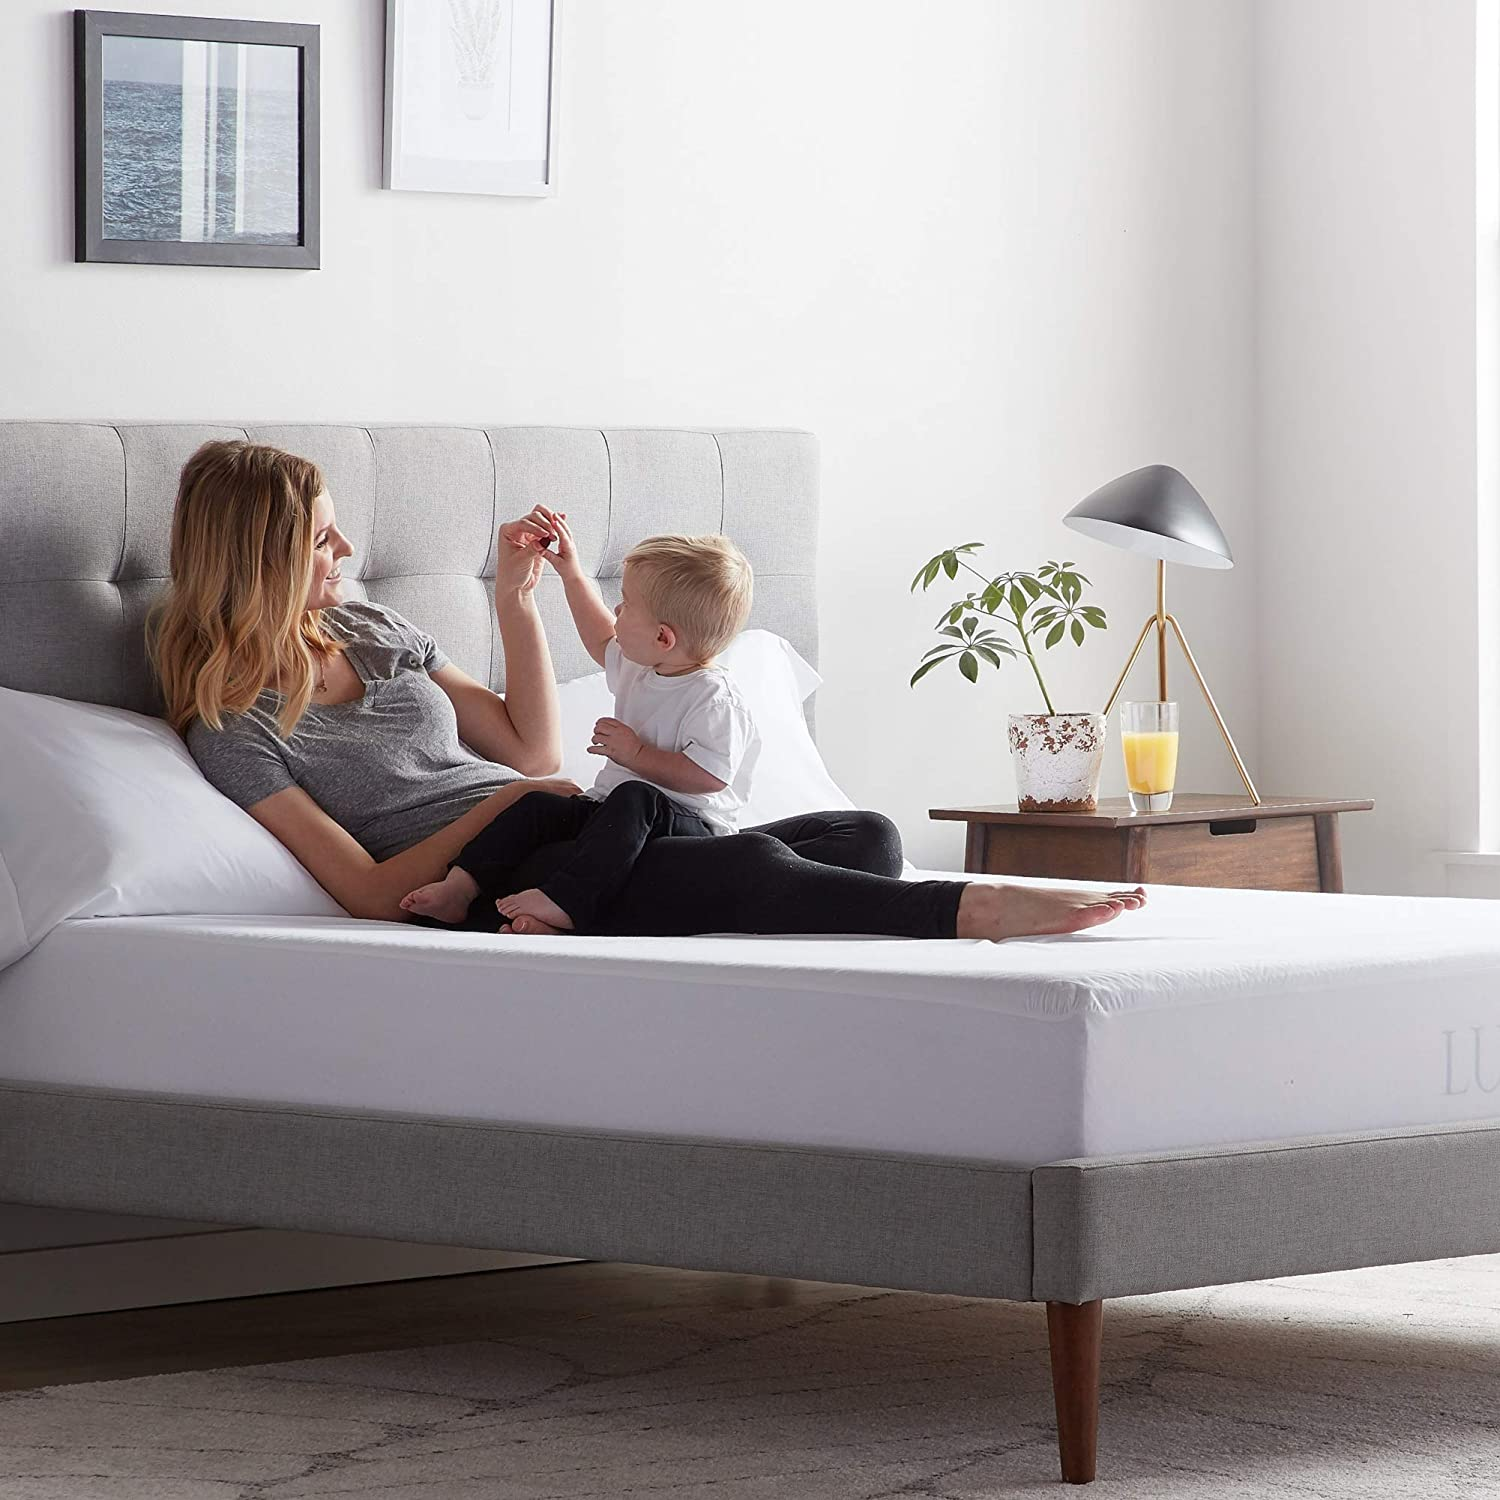 LUCID Premium Rayon from Bamboo Jersey Mattress Protector Waterproof Dust Mite Proof Hypoallergenic Queen Ultra Soft